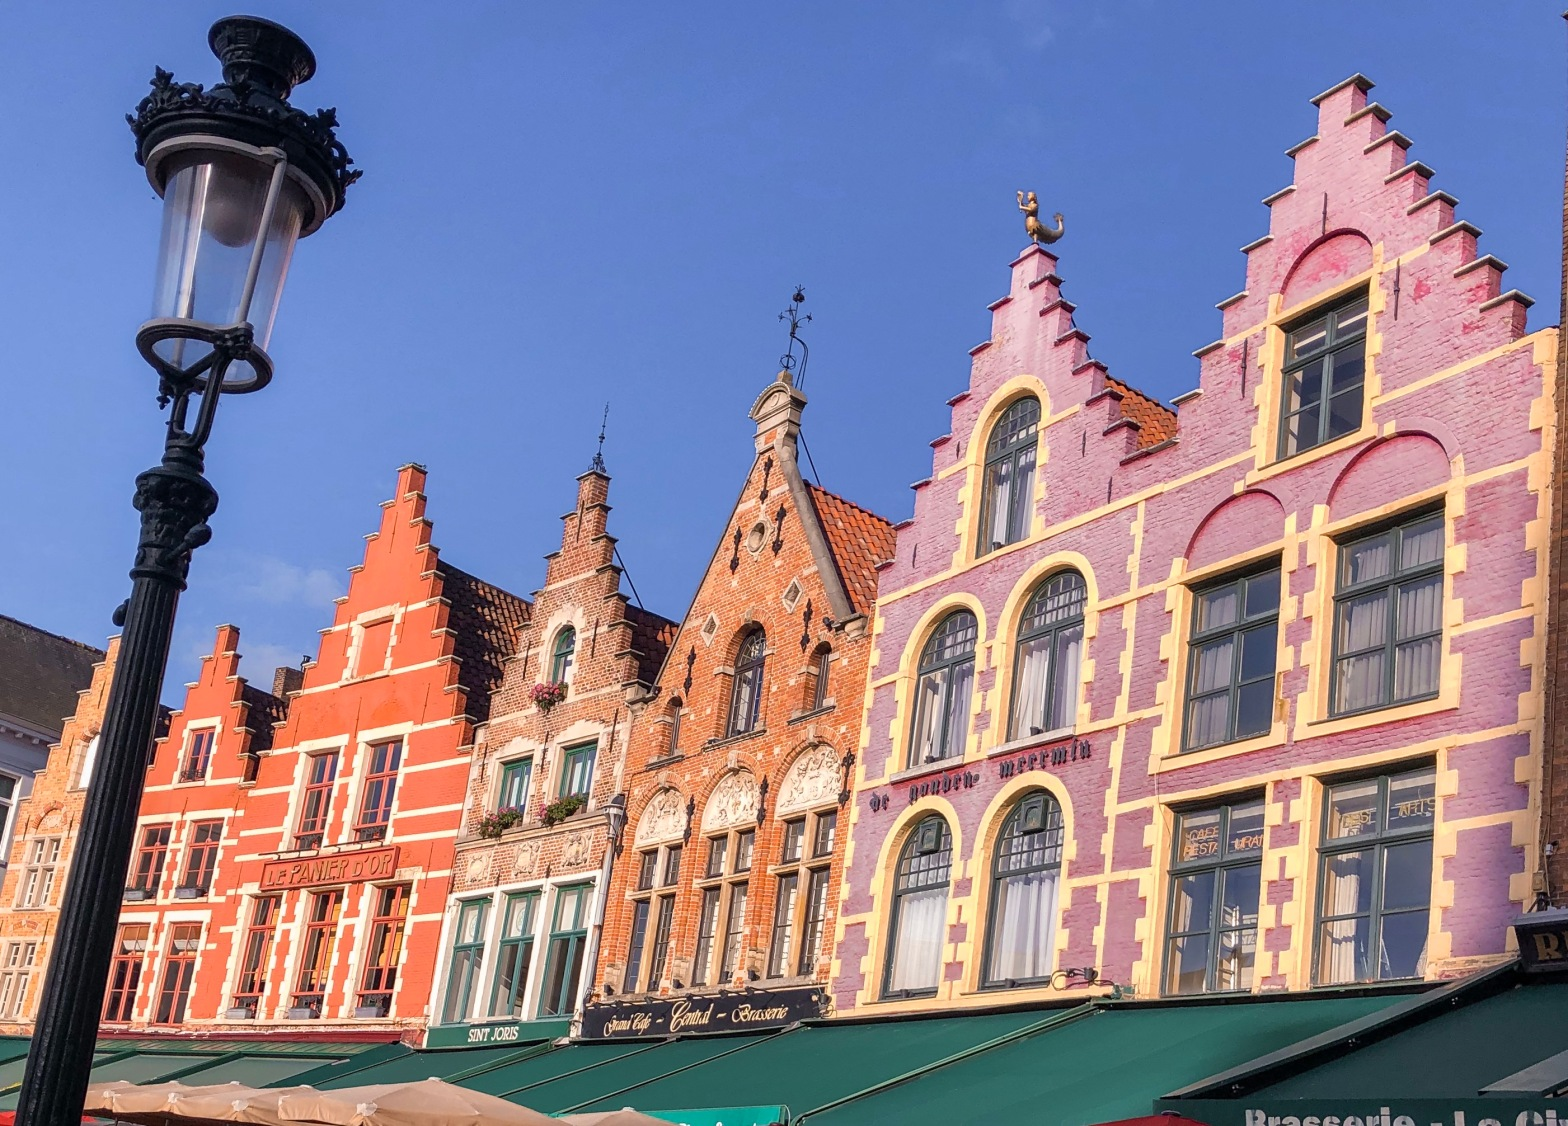 Colourful buildings on the main market square of Bruges. They look like gingerbread houses.